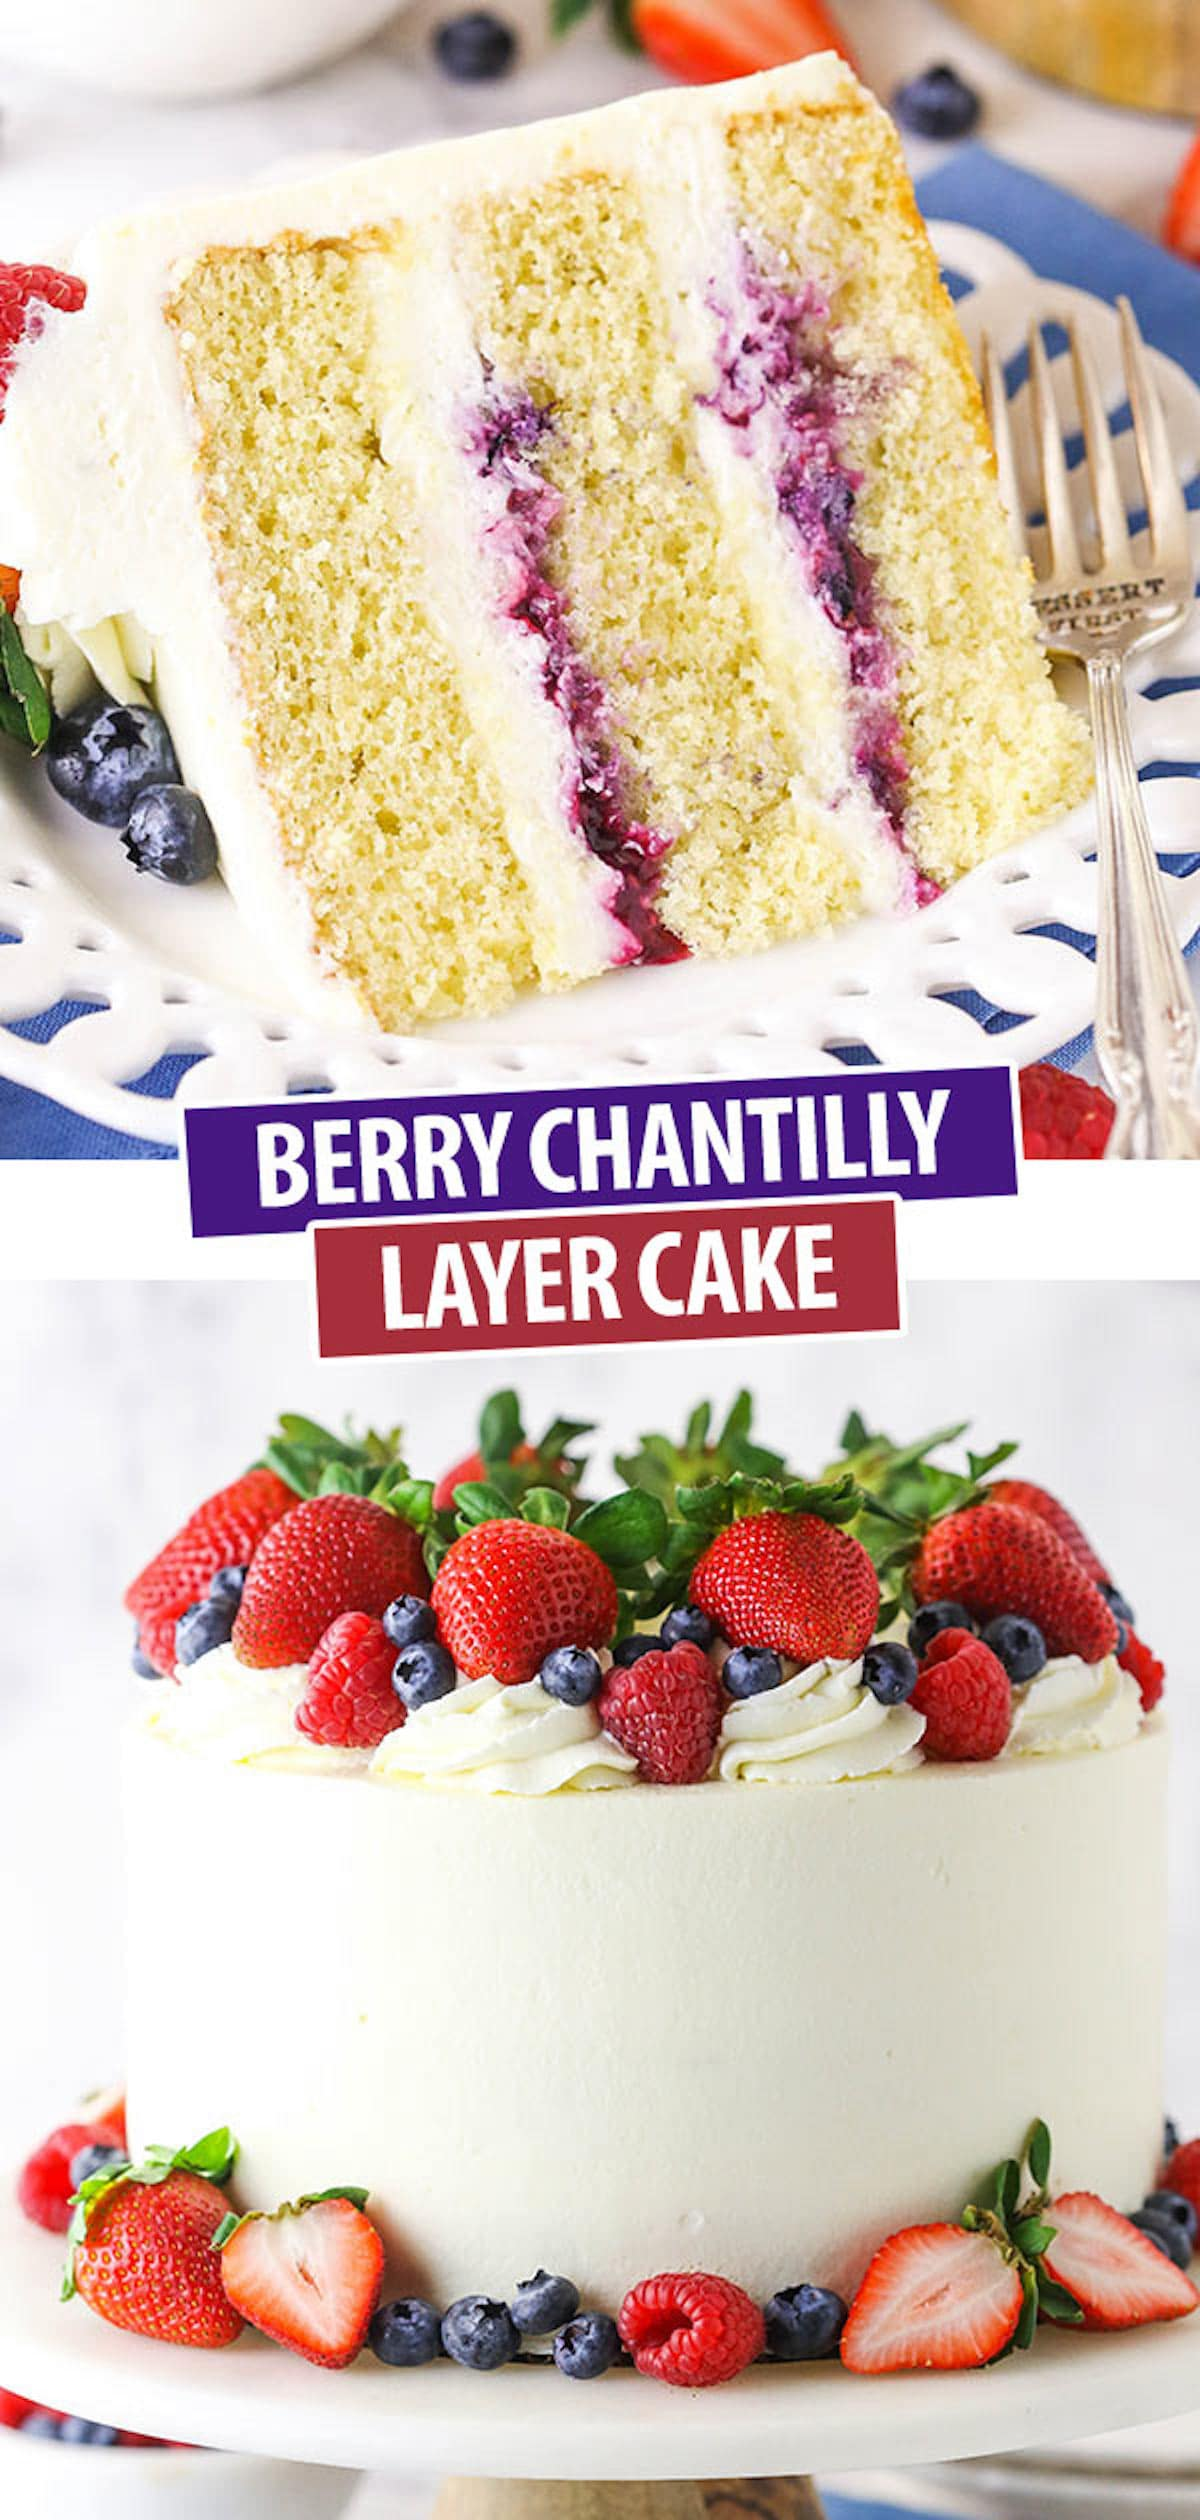 A Collage of Two Images of Berry Chantilly Cake Showing The Whole Cake Plus One Slice